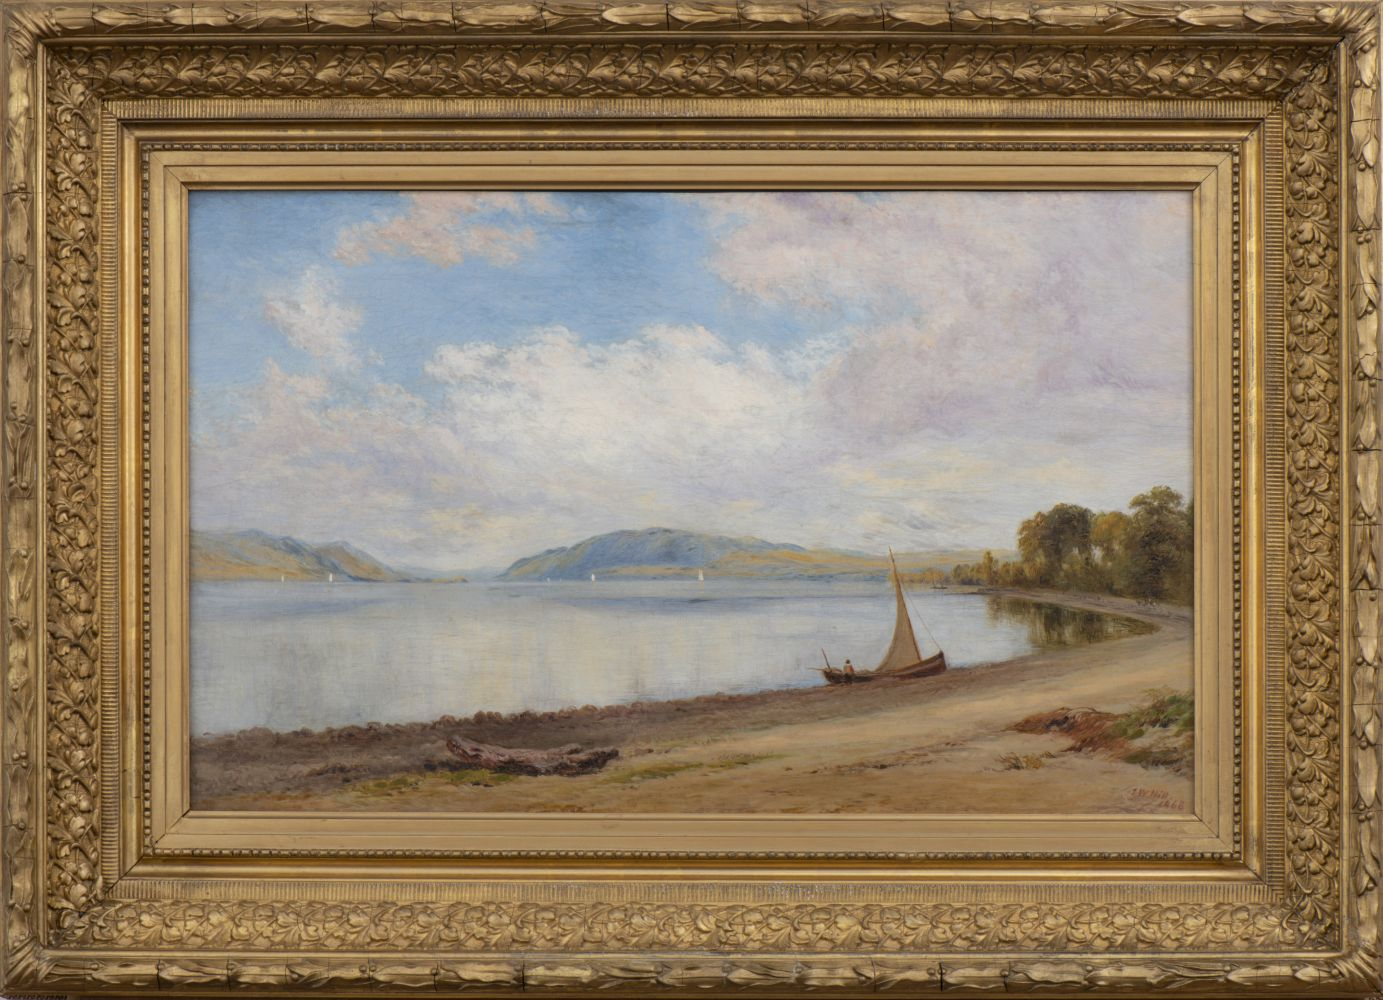 John William Hill (1812–1879) Afternoon, Newburgh-on-Hudson, 1868. Oil on canvas, 15 x 24 in. Signed and dated lower right: J. W. Hill / 1868 (framed)